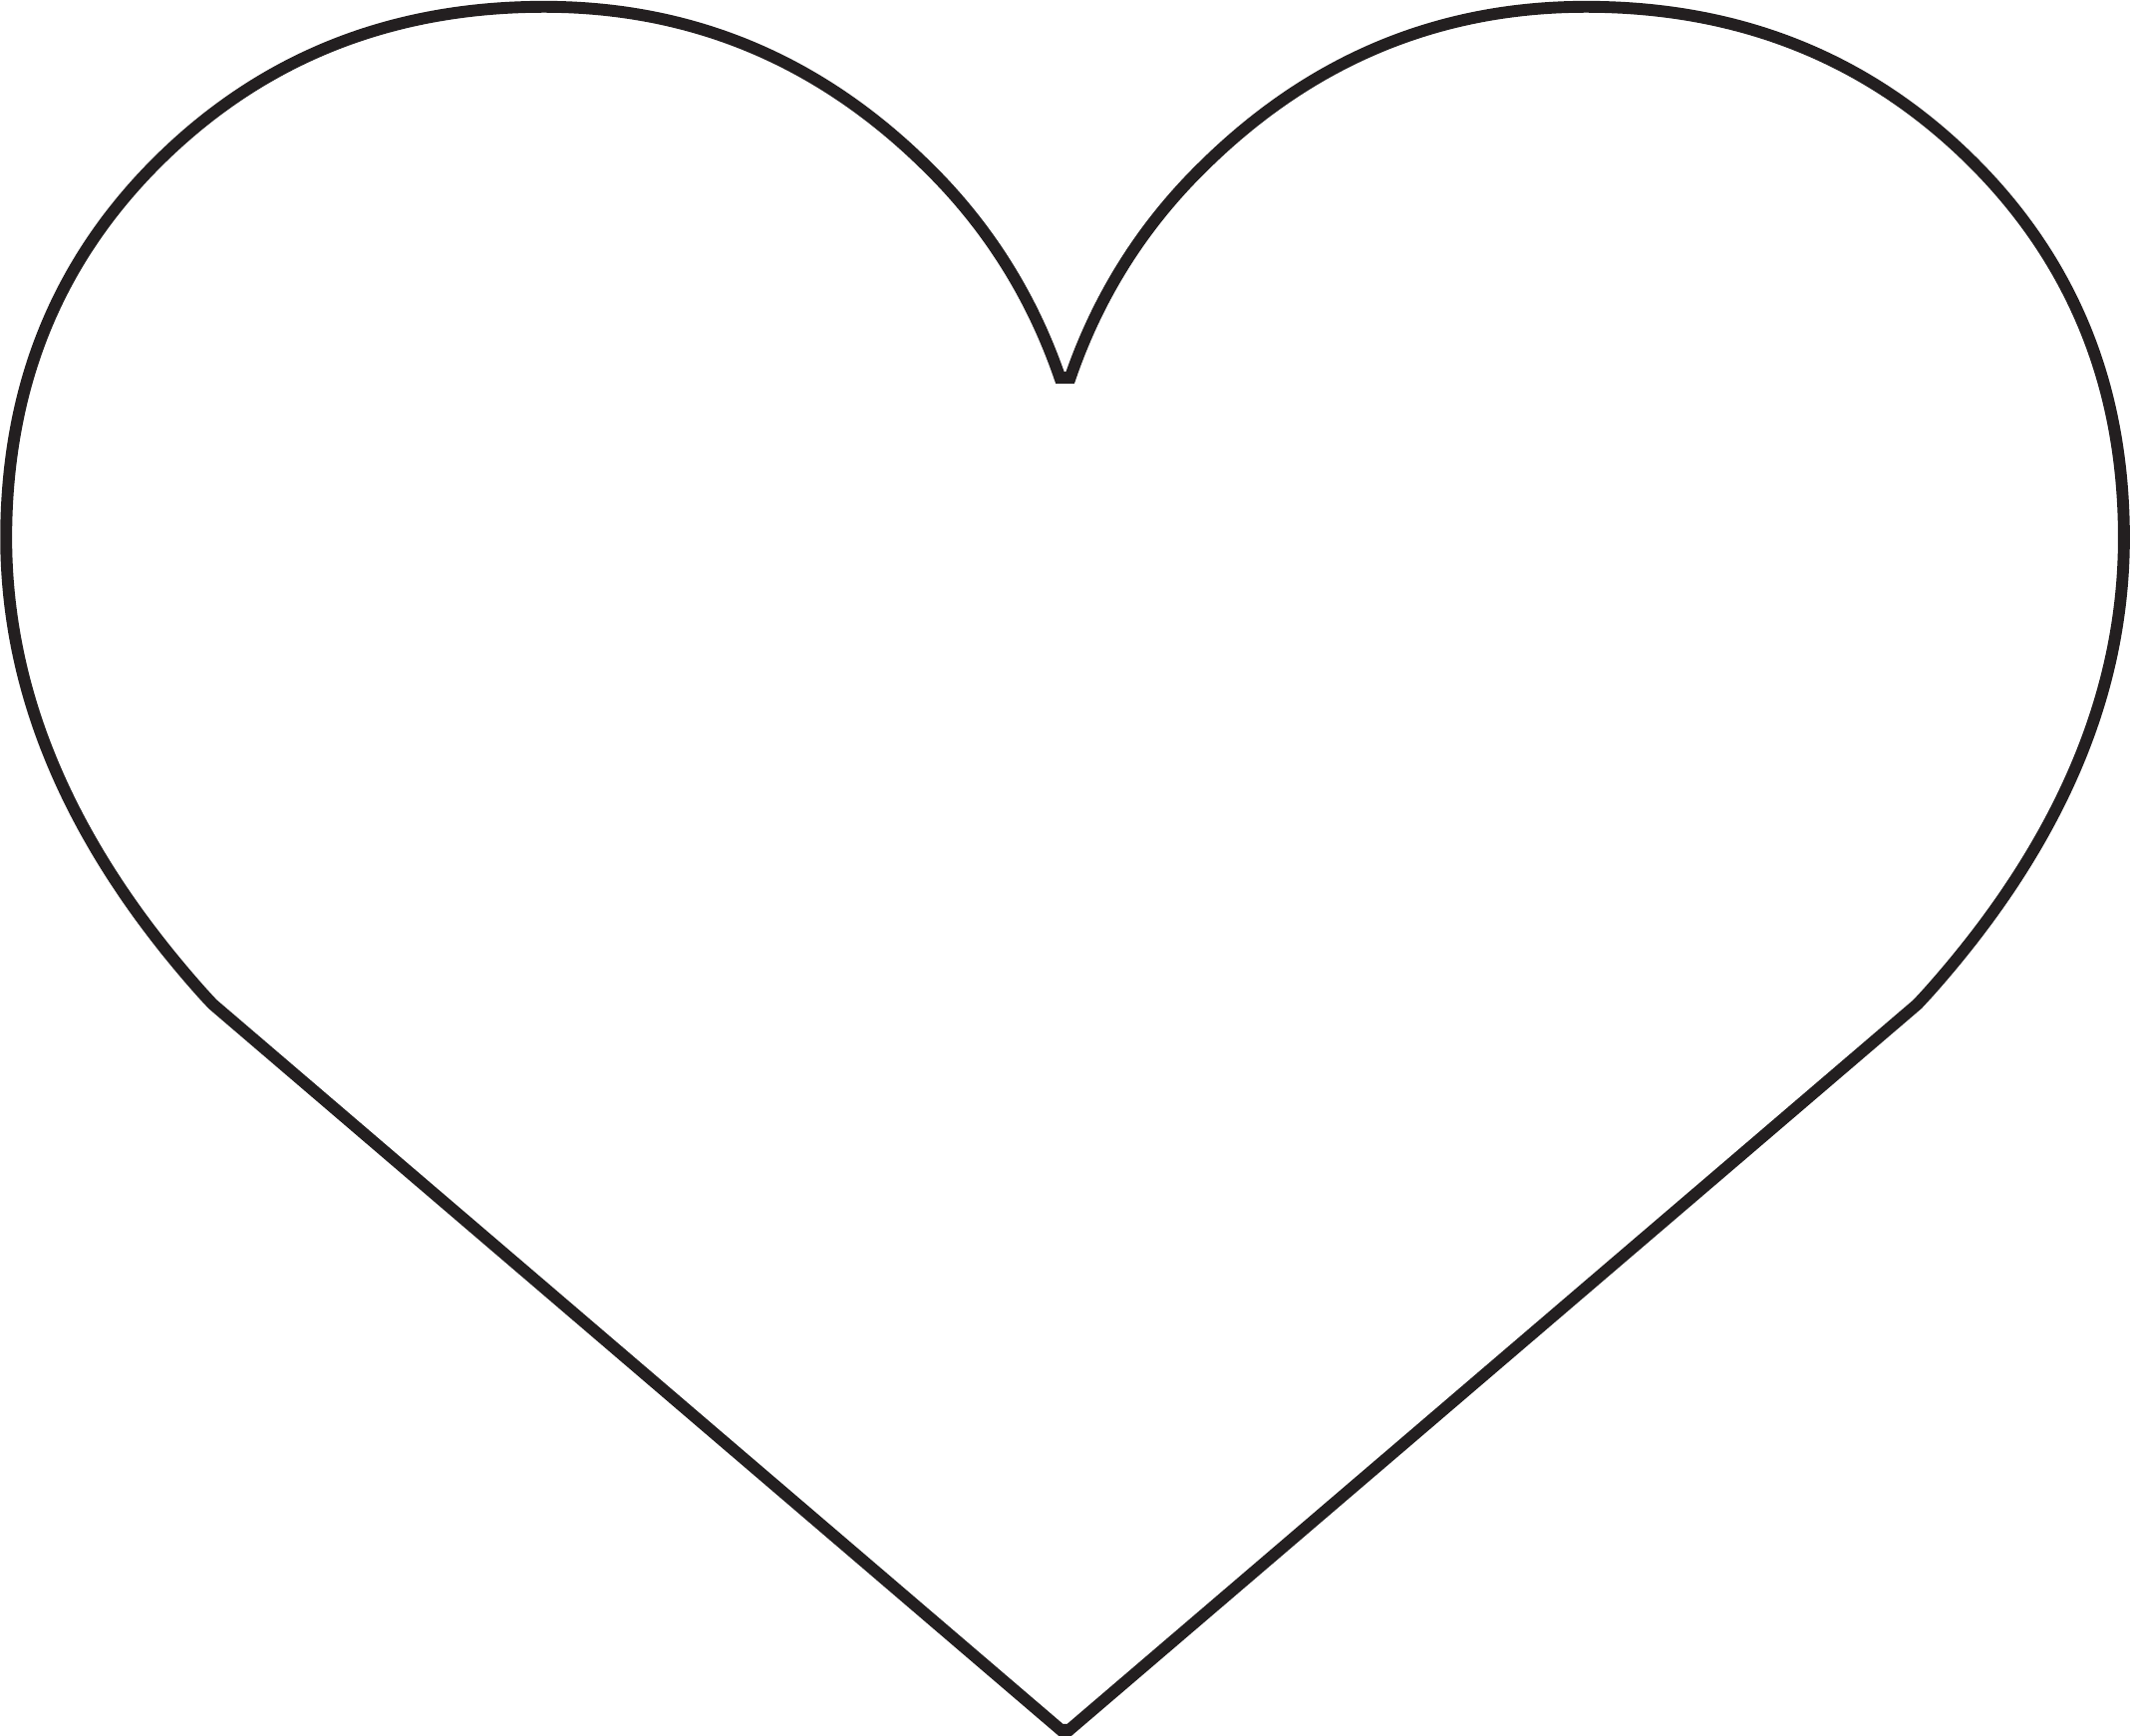 Sample Heart Template Free Download